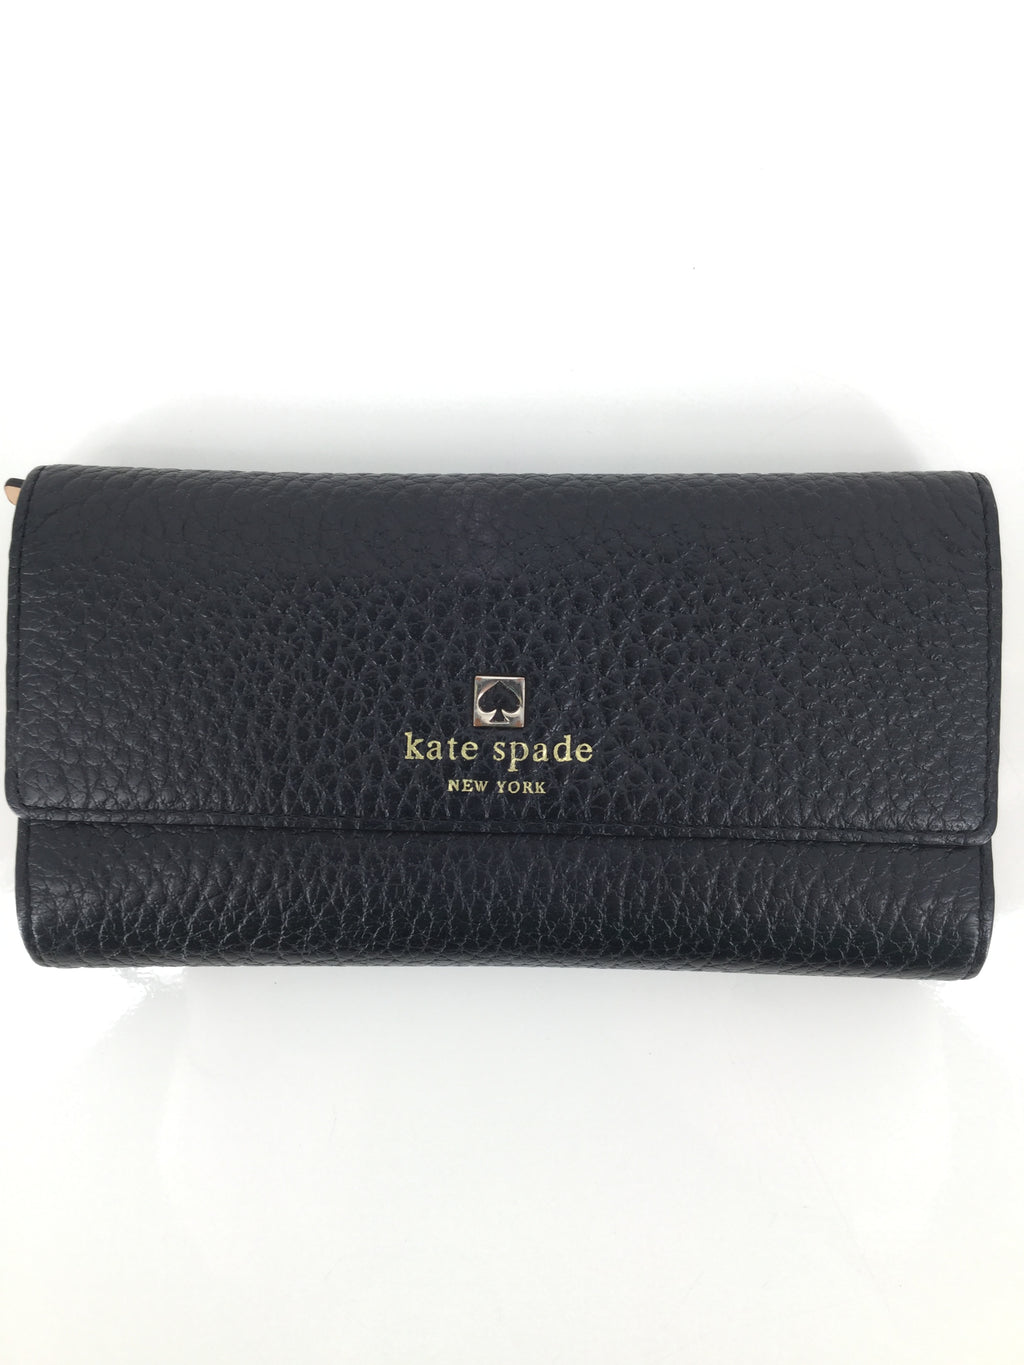 Kate Spade Wallet, Black, Medium